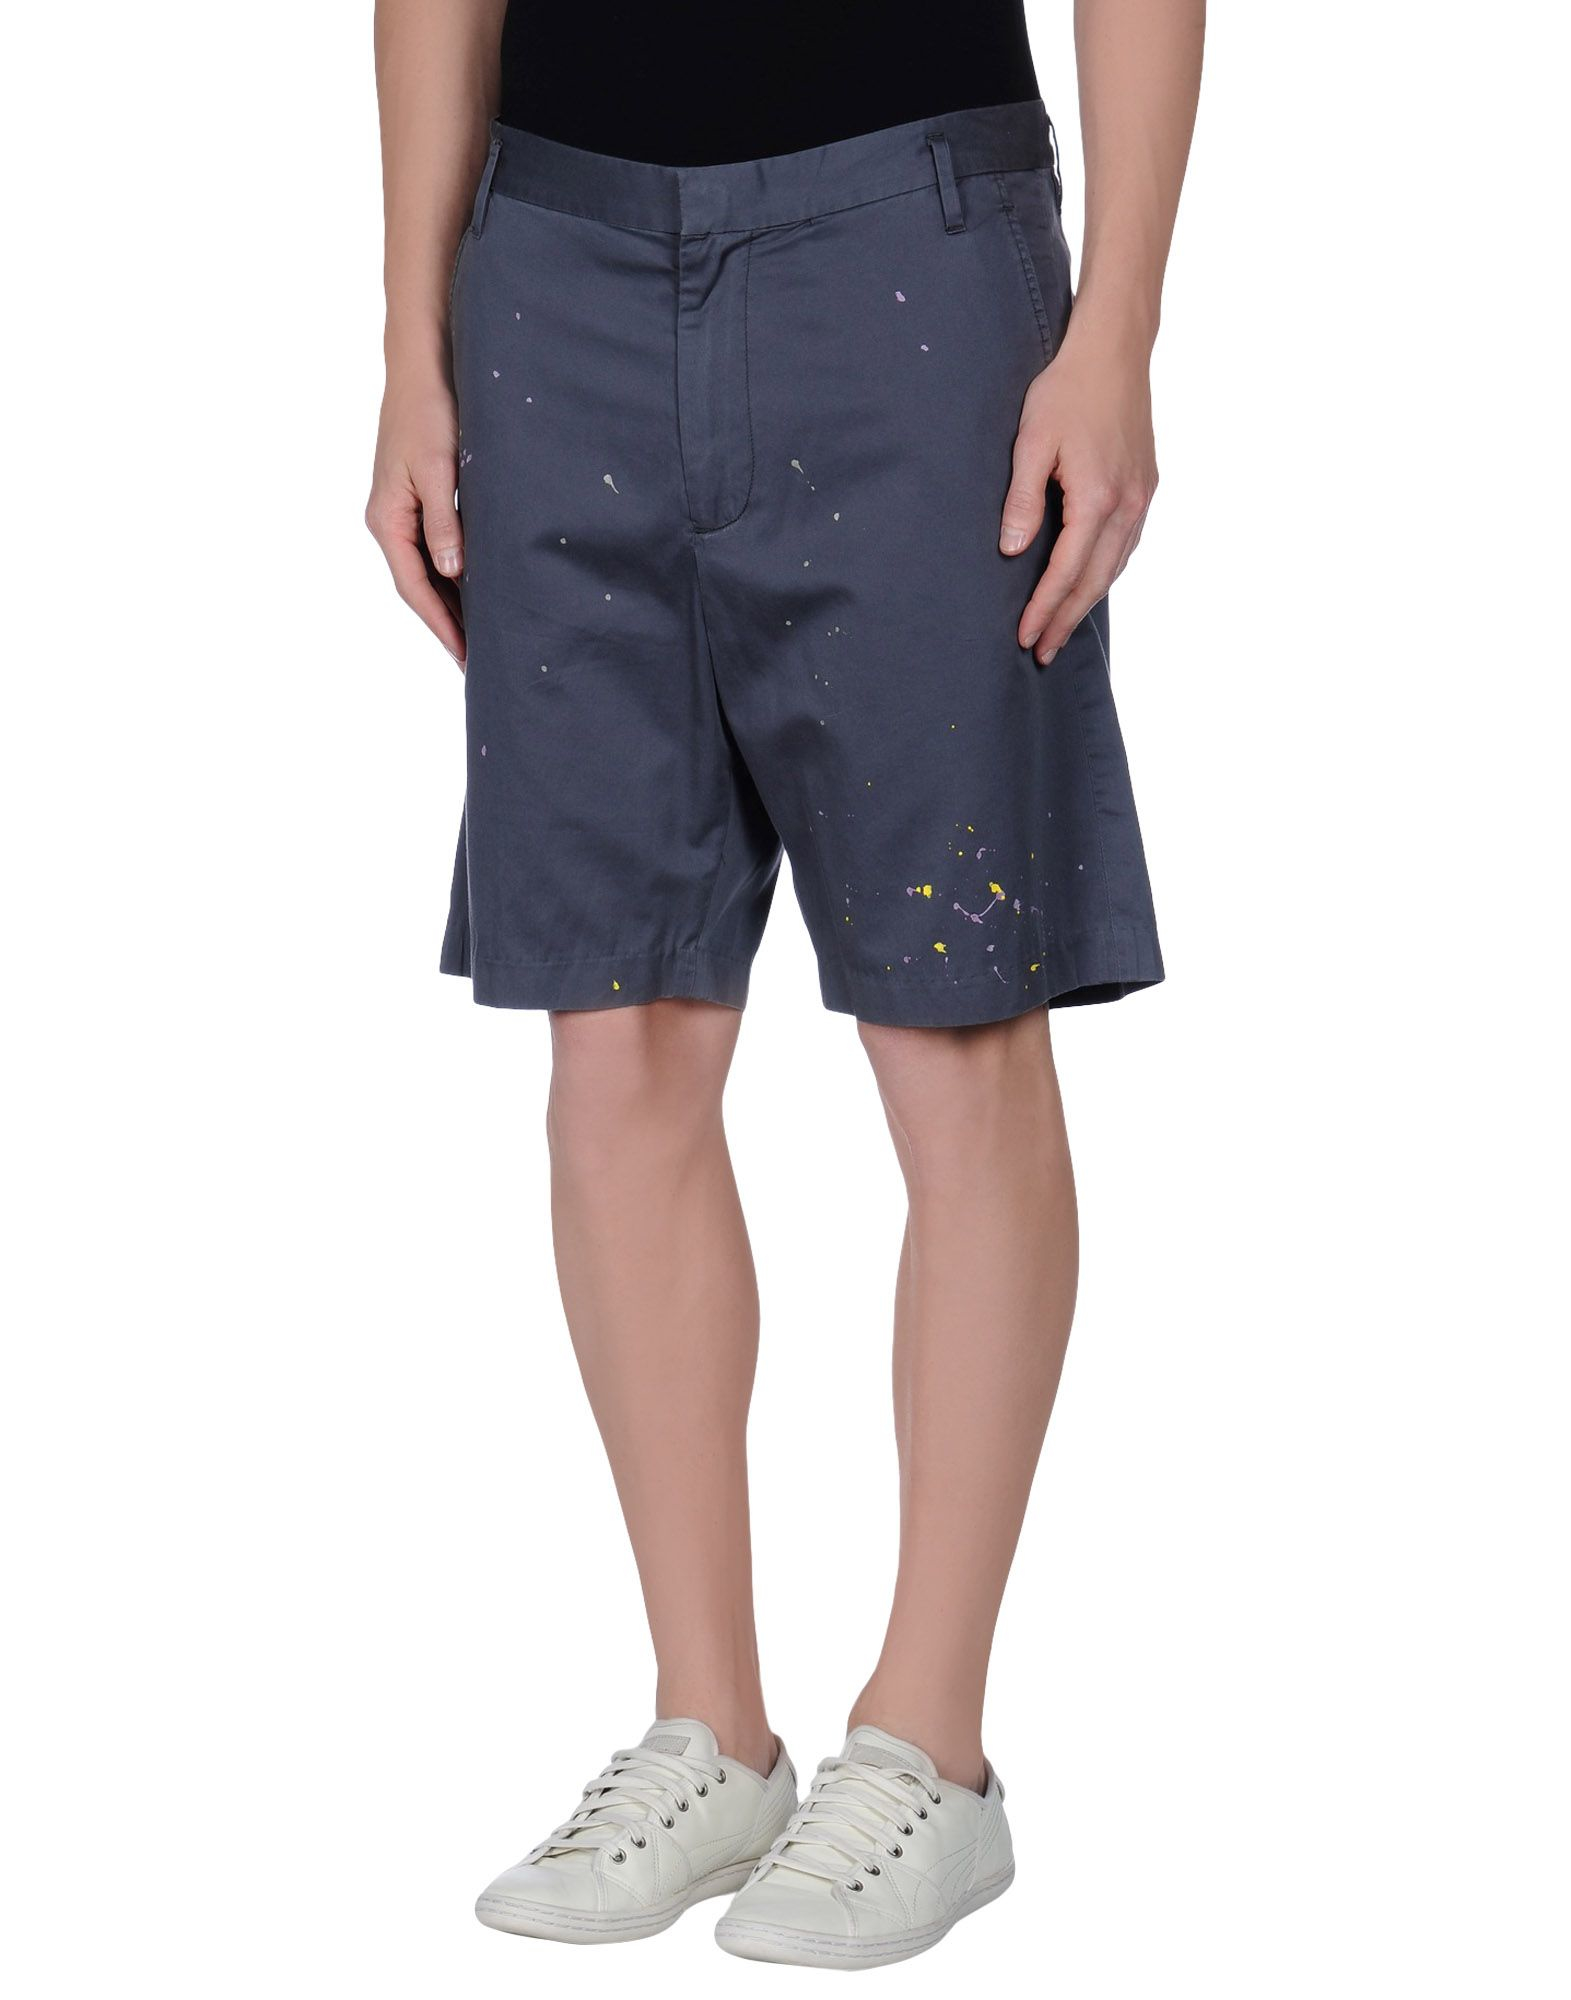 Marc by marc jacobs Bermuda Shorts in Gray for Men | Lyst